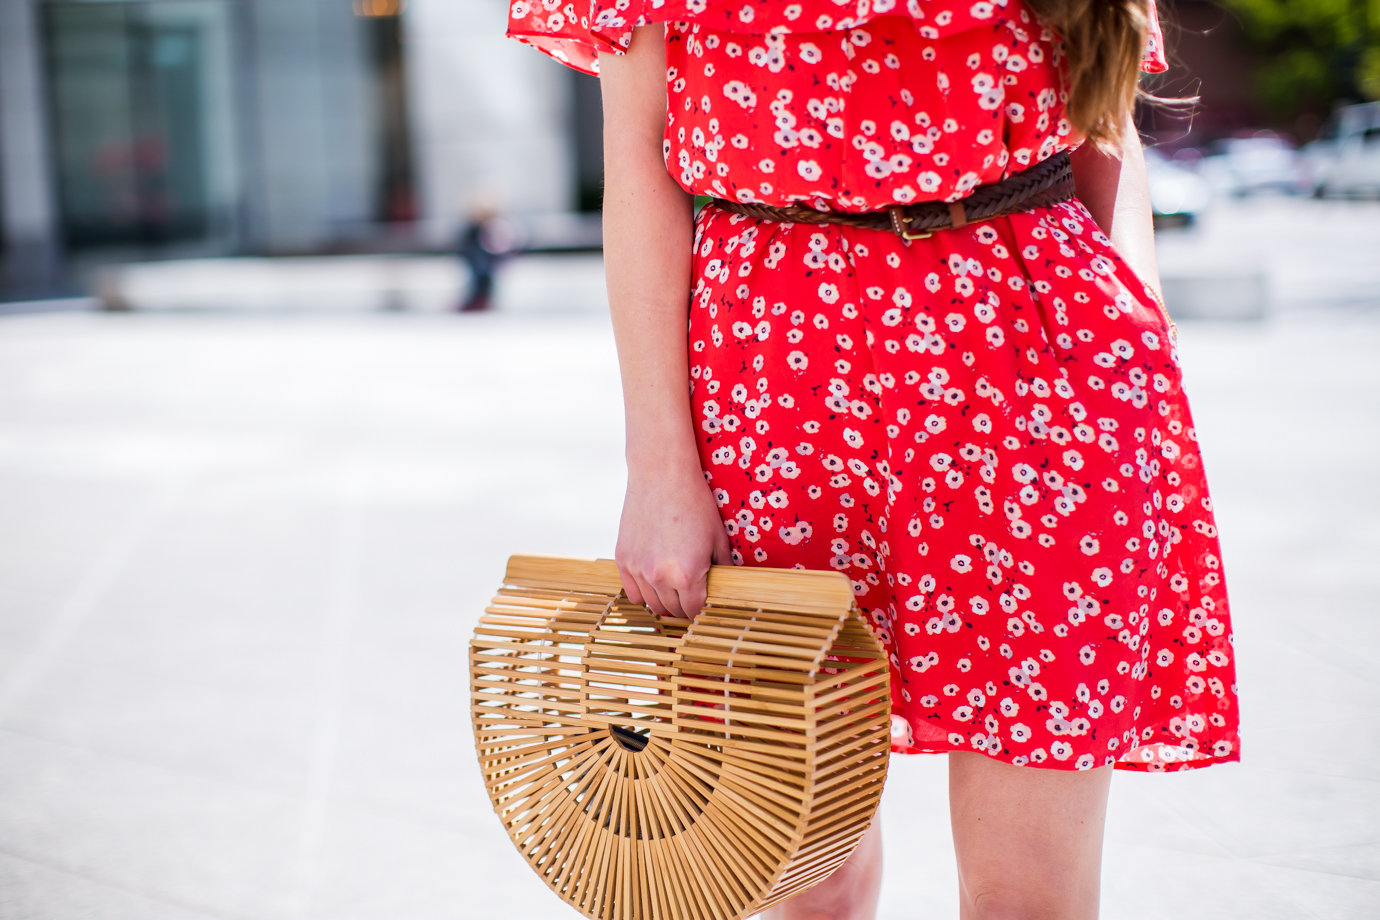 Fashion on a Budget - Summer Top and Dress Under $75